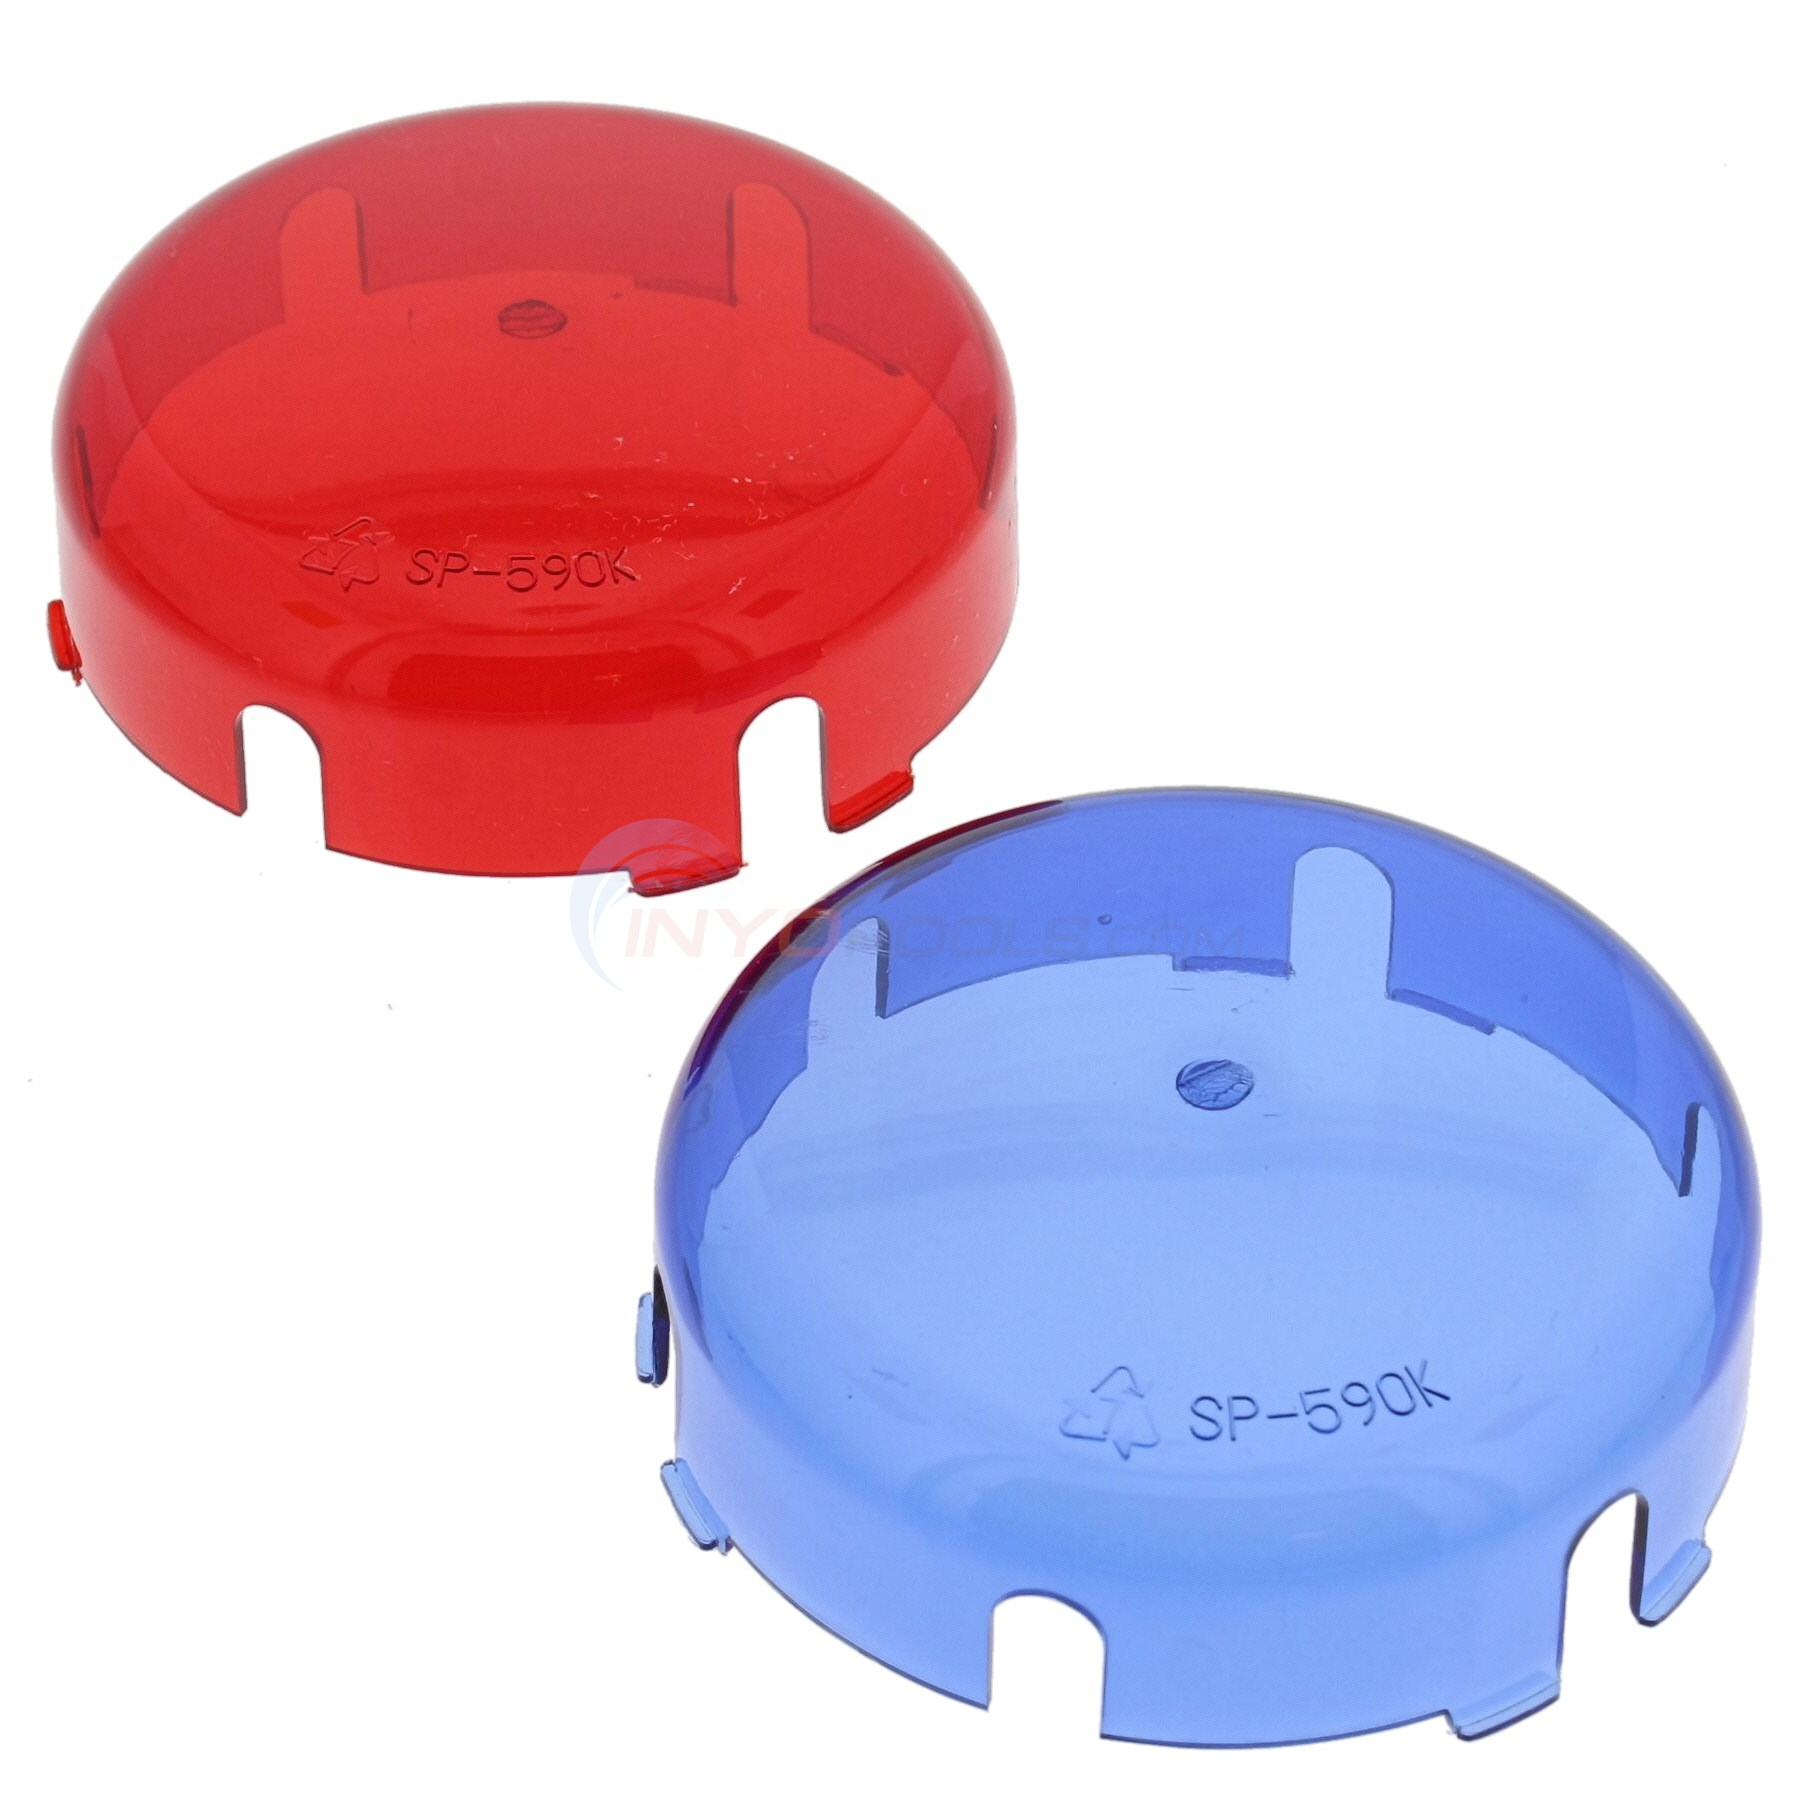 Lens Cover Kit, Blue And Red (spx0590k)